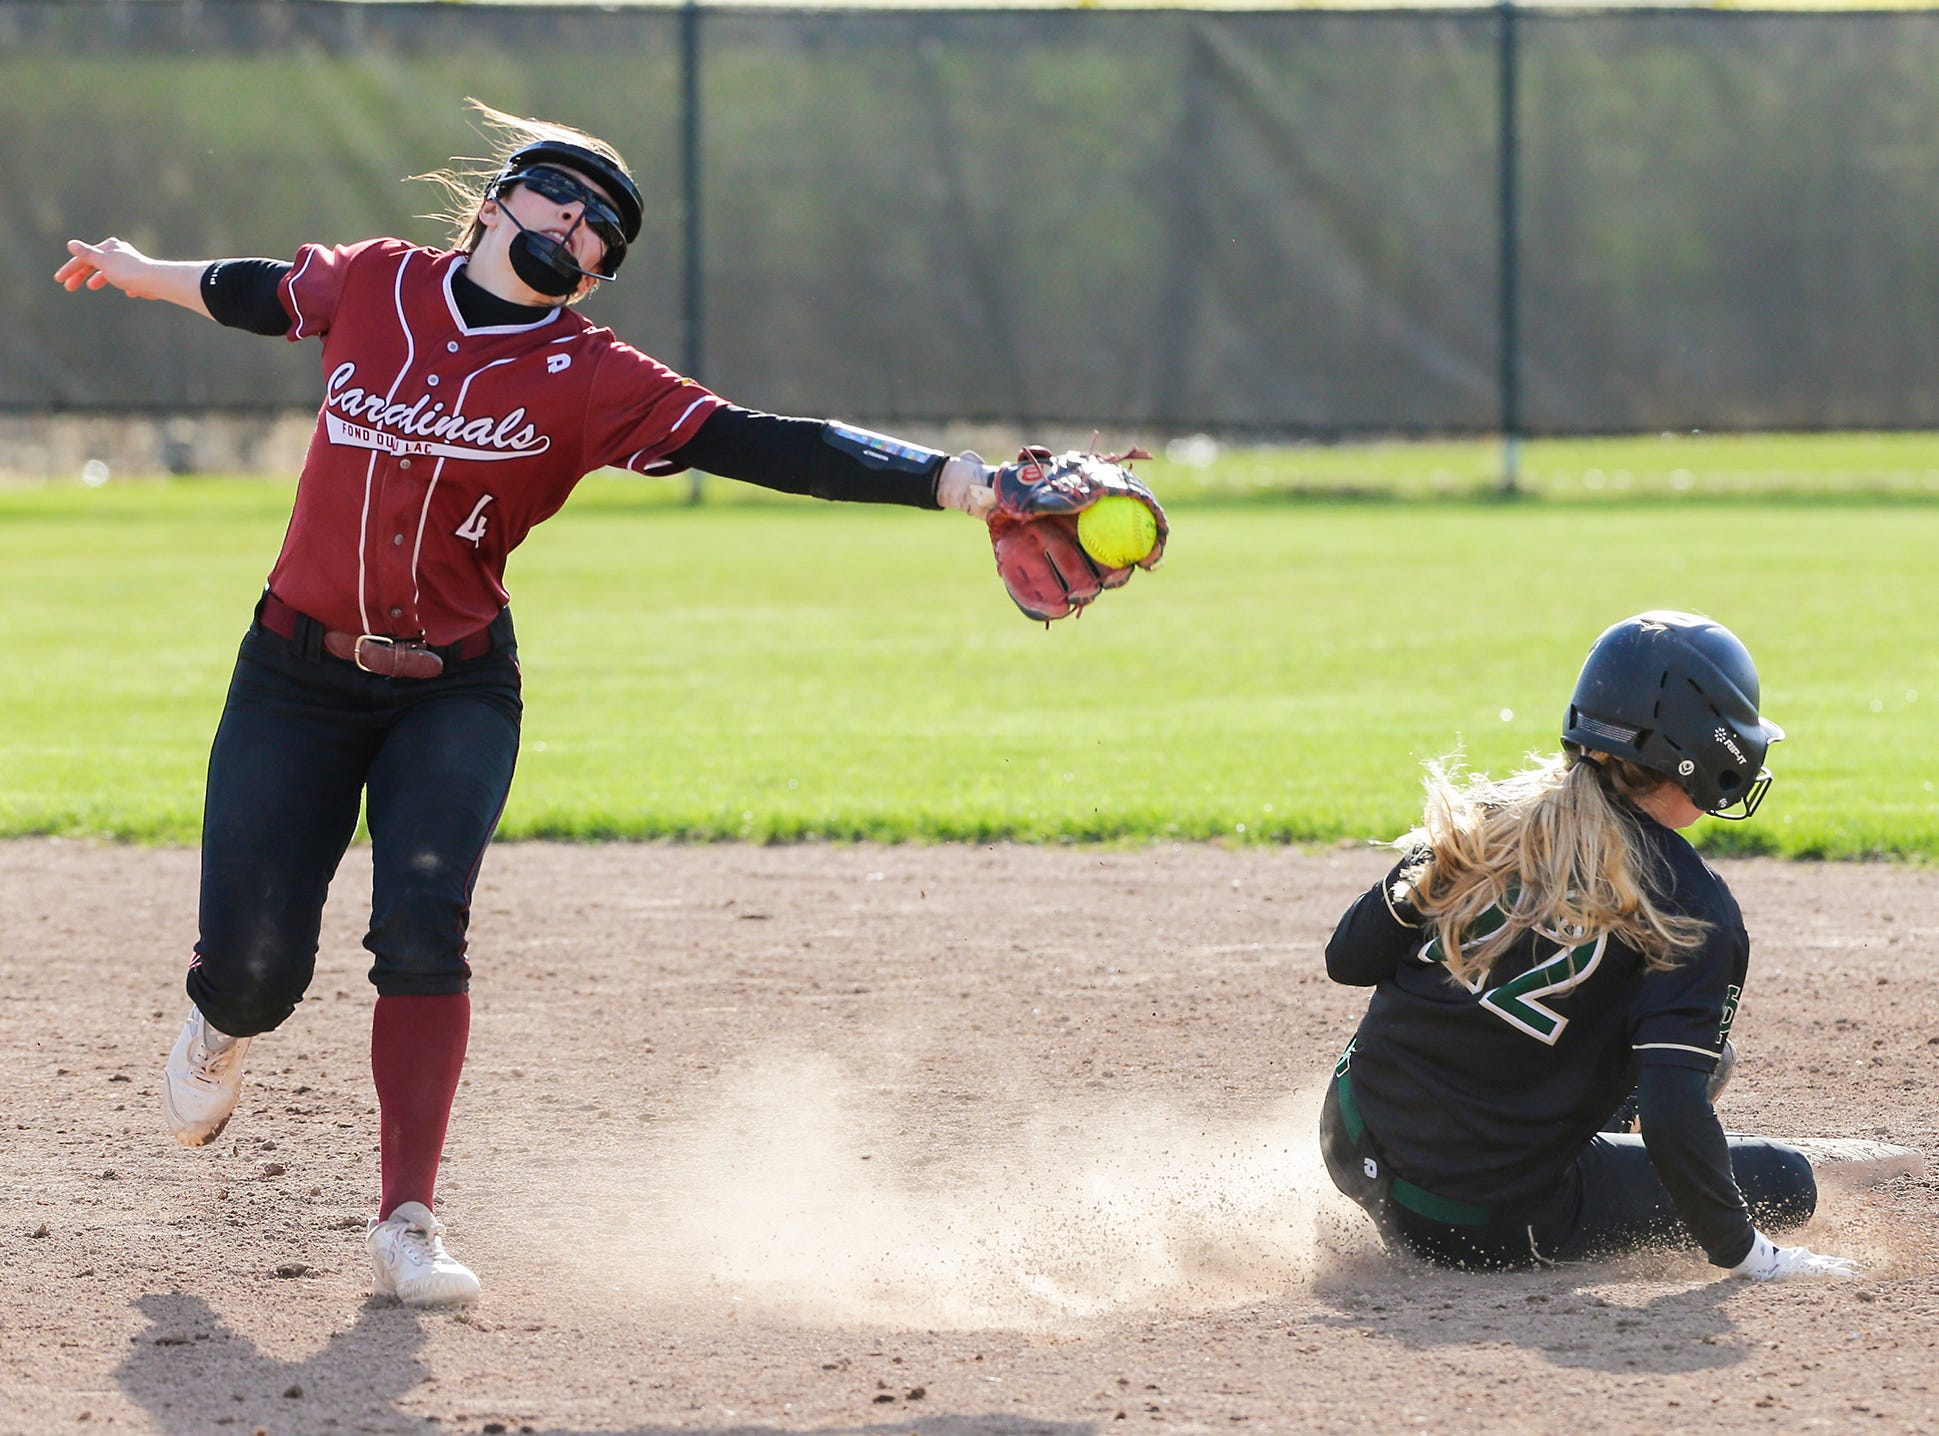 Fond du Lac High School softball's Abby Freismuth misses a tag against Oshkosh North High School's Brooke Ellstad as she steals second base during their game Friday, April 26, 2019 in Fond du Lac, Wis. Doug Raflik/USA TODAY NETWORK-Wisconsin